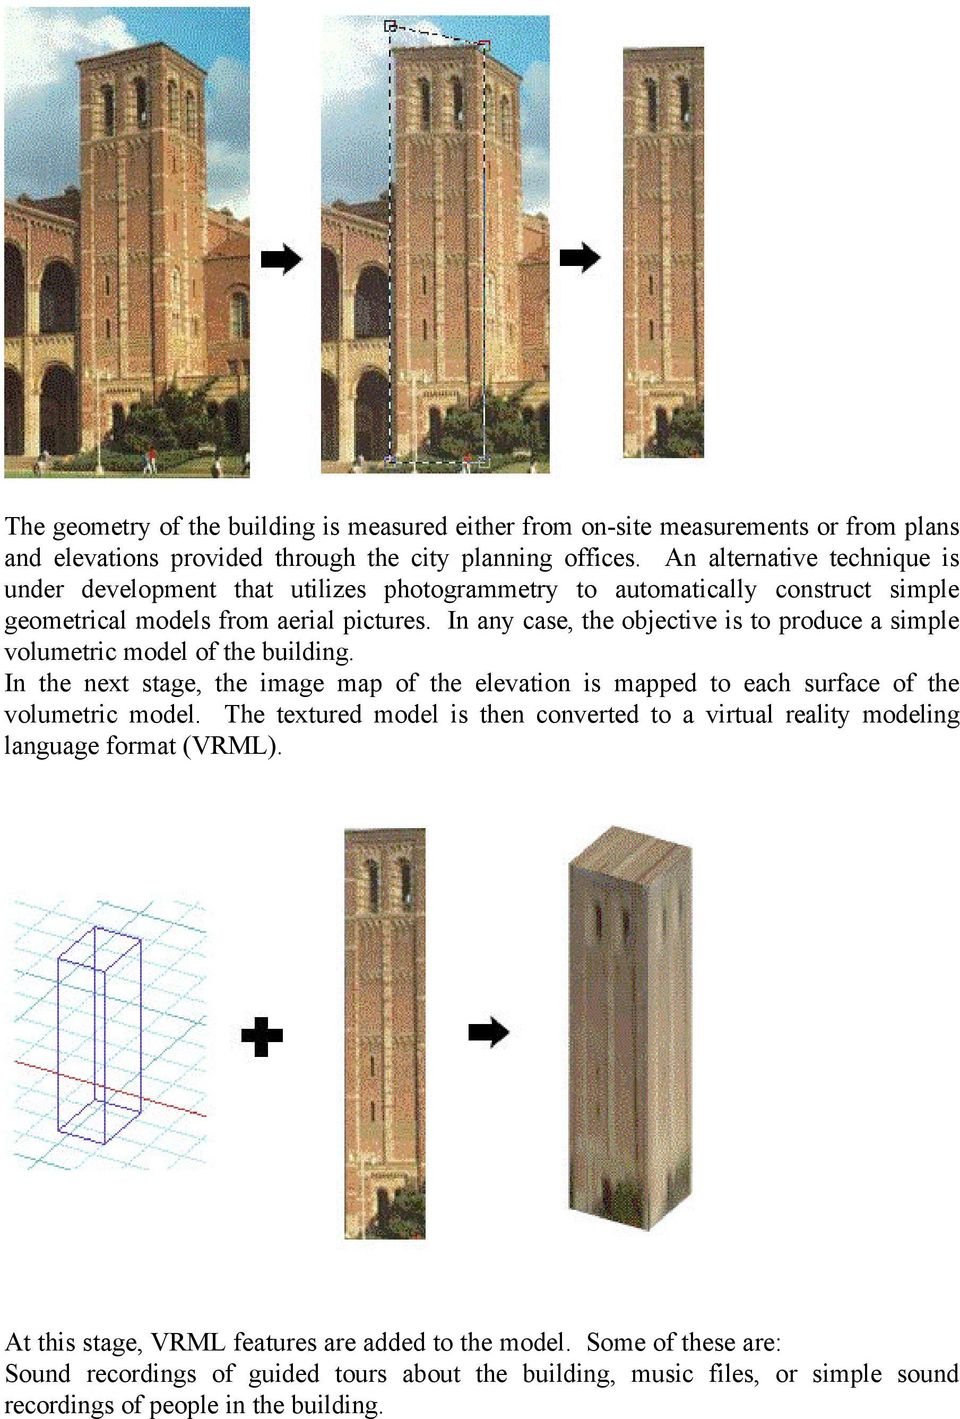 In any case, the objective is to produce a simple volumetric model of the building. In the next stage, the image map of the elevation is mapped to each surface of the volumetric model.